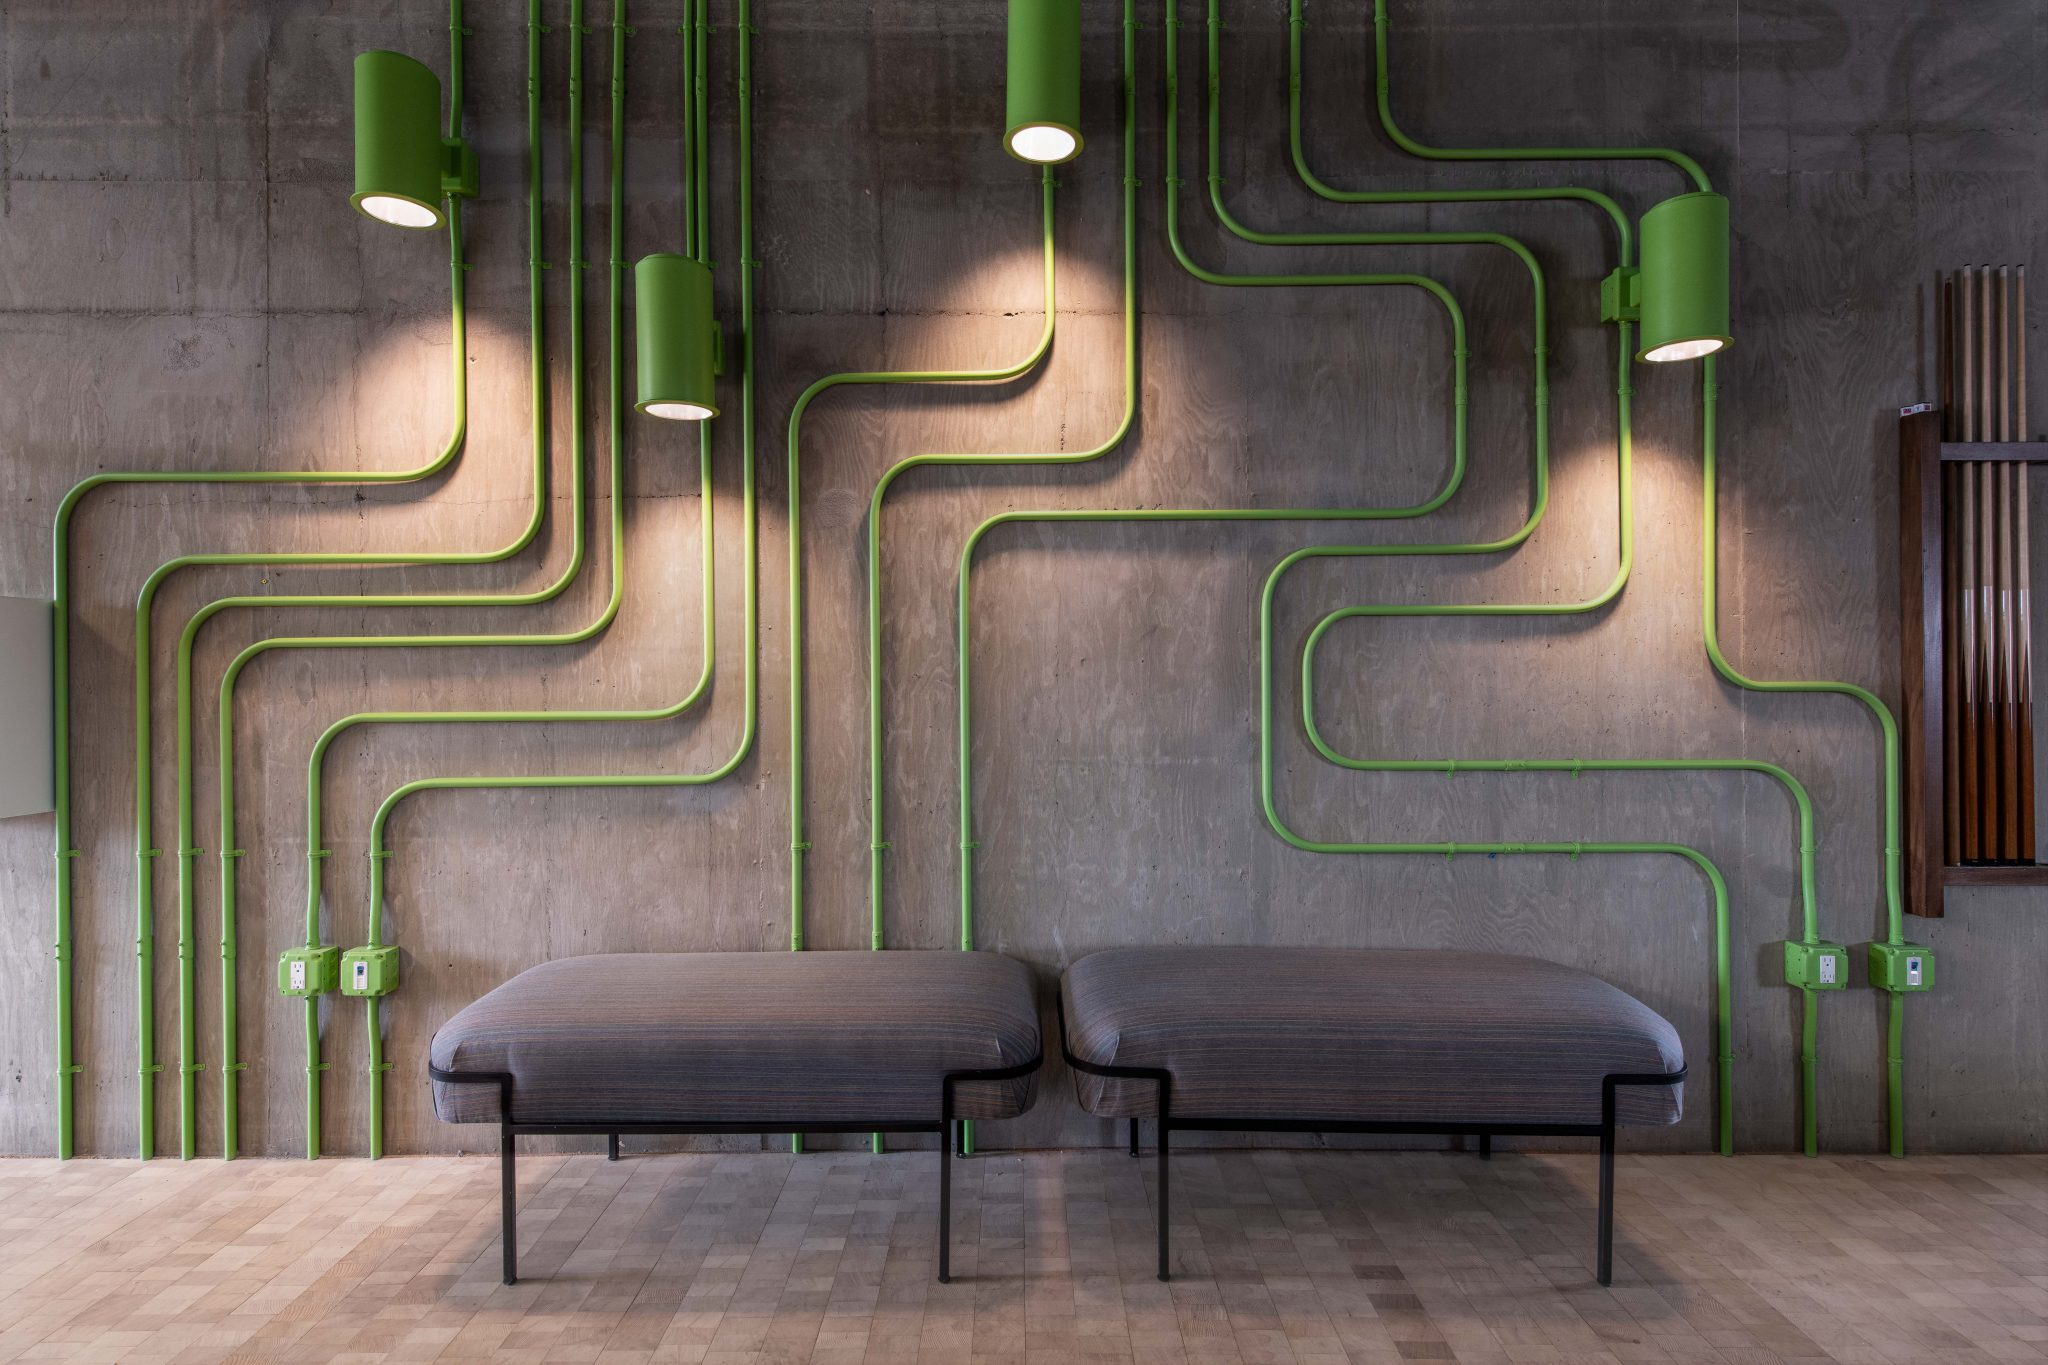 Lighting revamp, green non linear lamp structures. Downtown LA shared workspace, DDI Designs